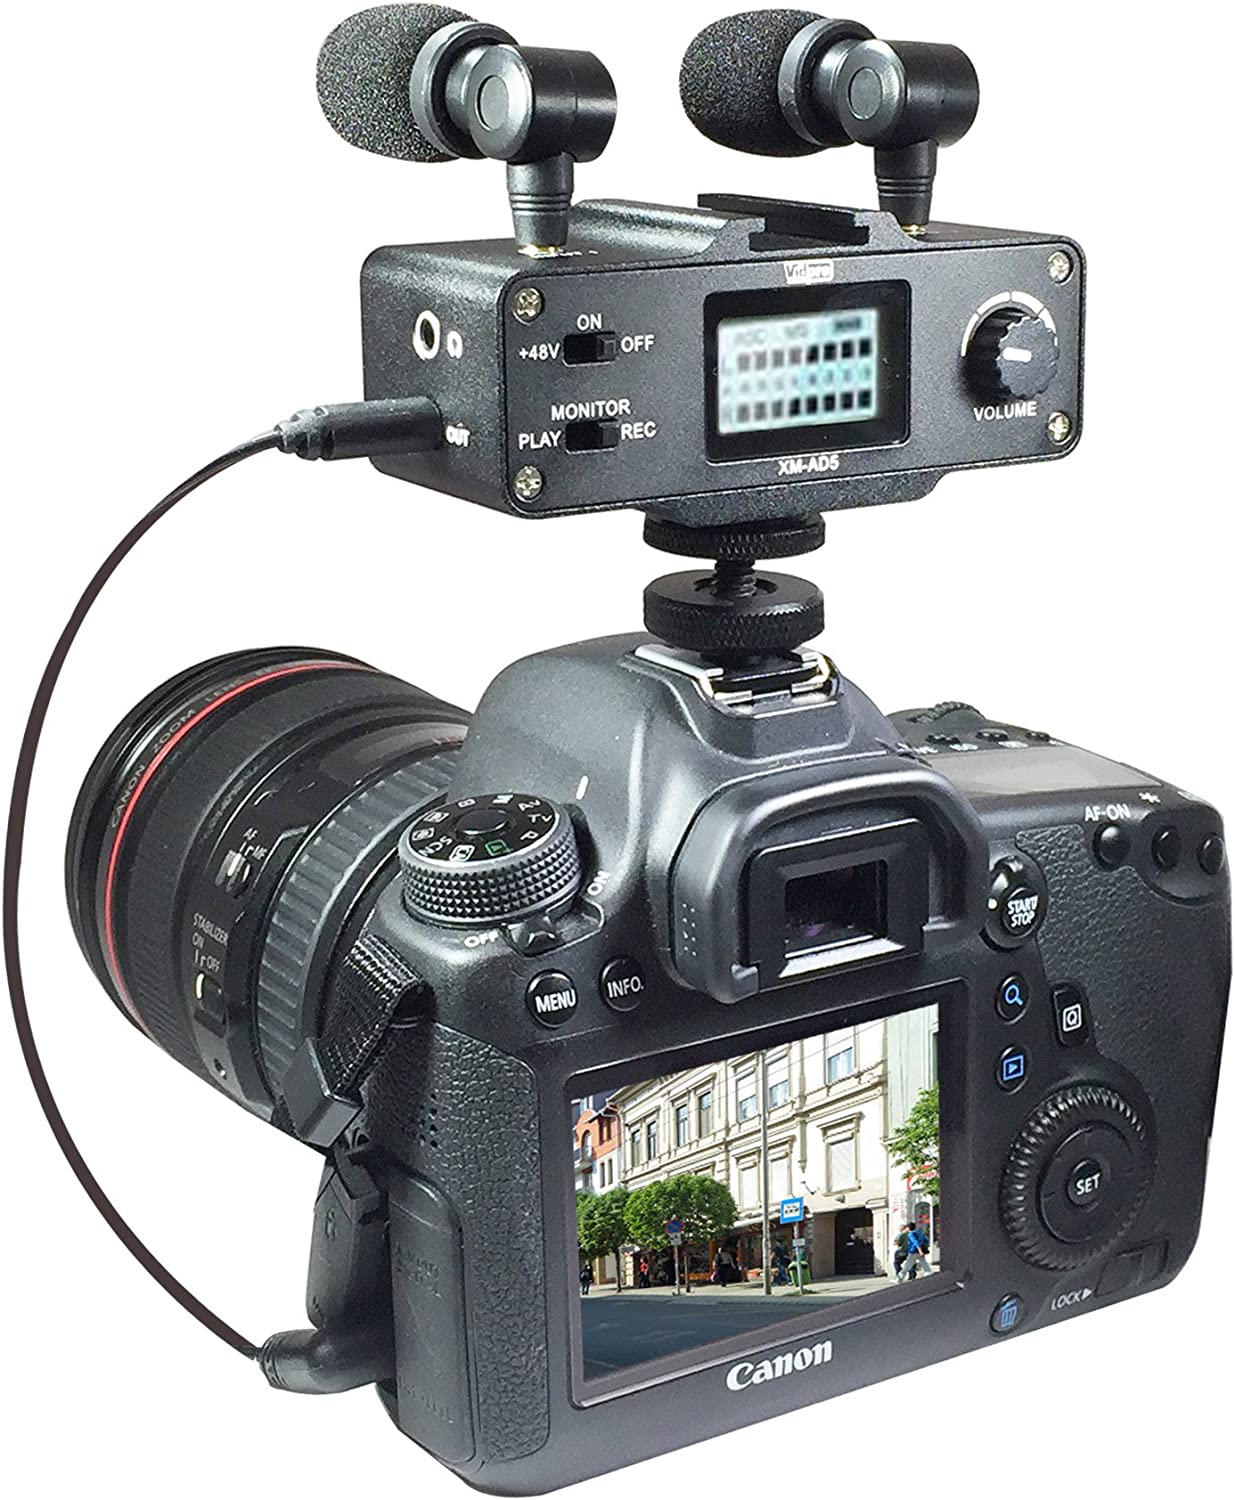 Panasonic HDC-TM55K Camcorder External Microphone Vidpro XM-AD5 Mini Pre-Amp Smart Mixer with Dual Condenser Microphones for DSLR/'s Video Cameras and Phones with SDC-26 Case